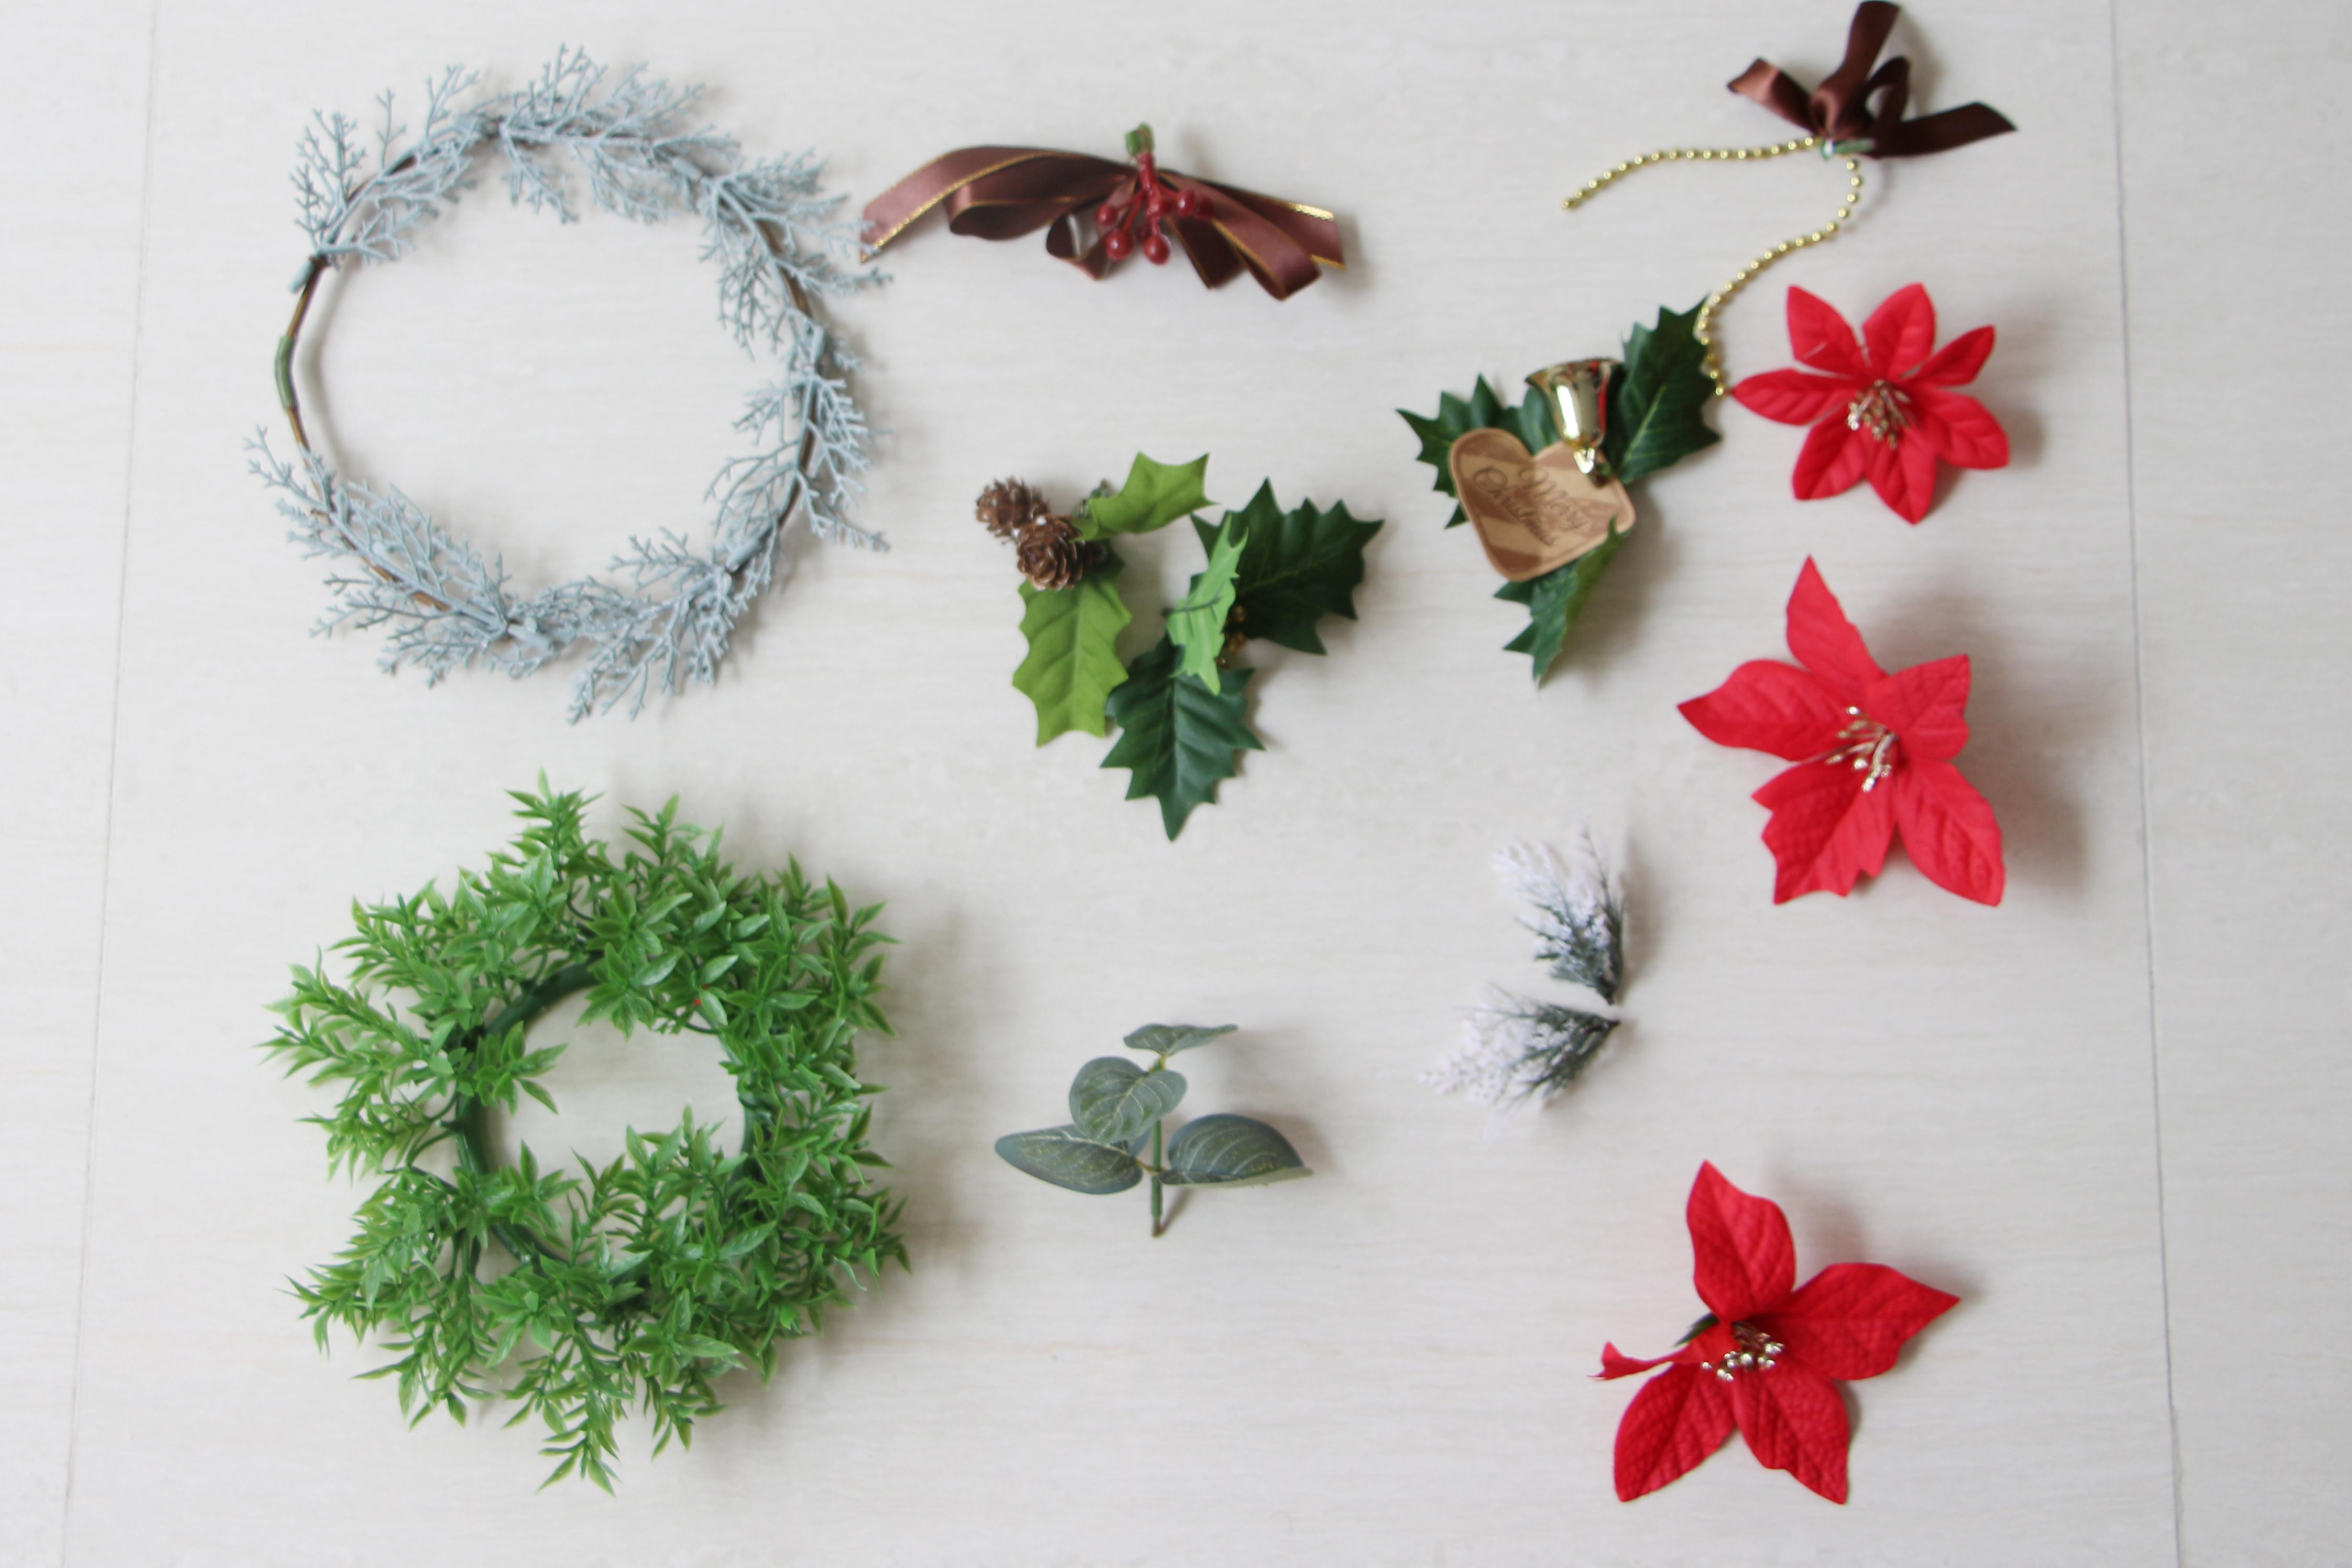 Diy Wreath Supplies Diy Christmas Wreath With Daiso Supplies Sarach And Stefith